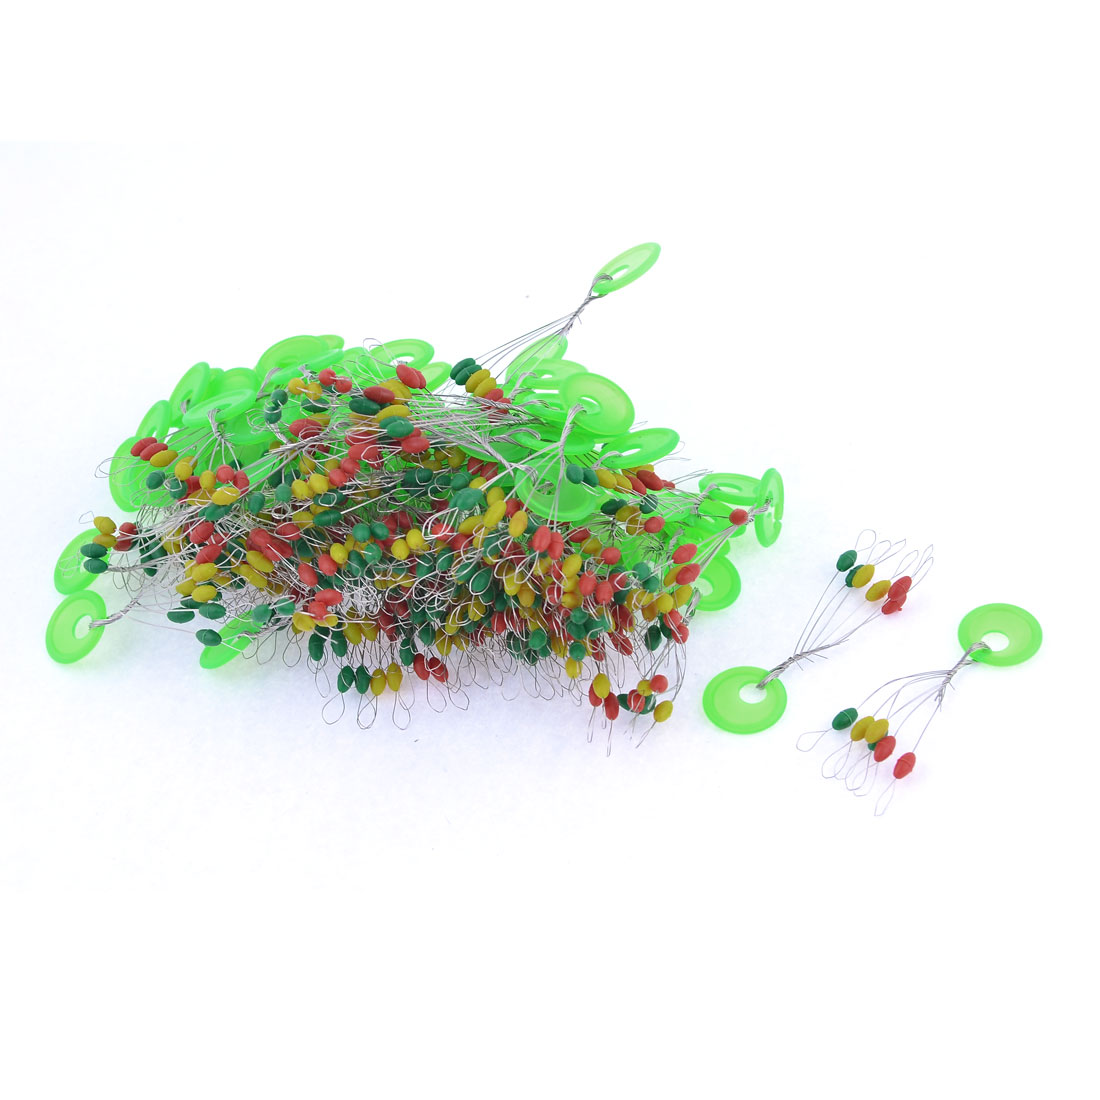 100 Pcs Green 5mm x 2.5mm Beads Floater Bobber Stopper Angling Tackle